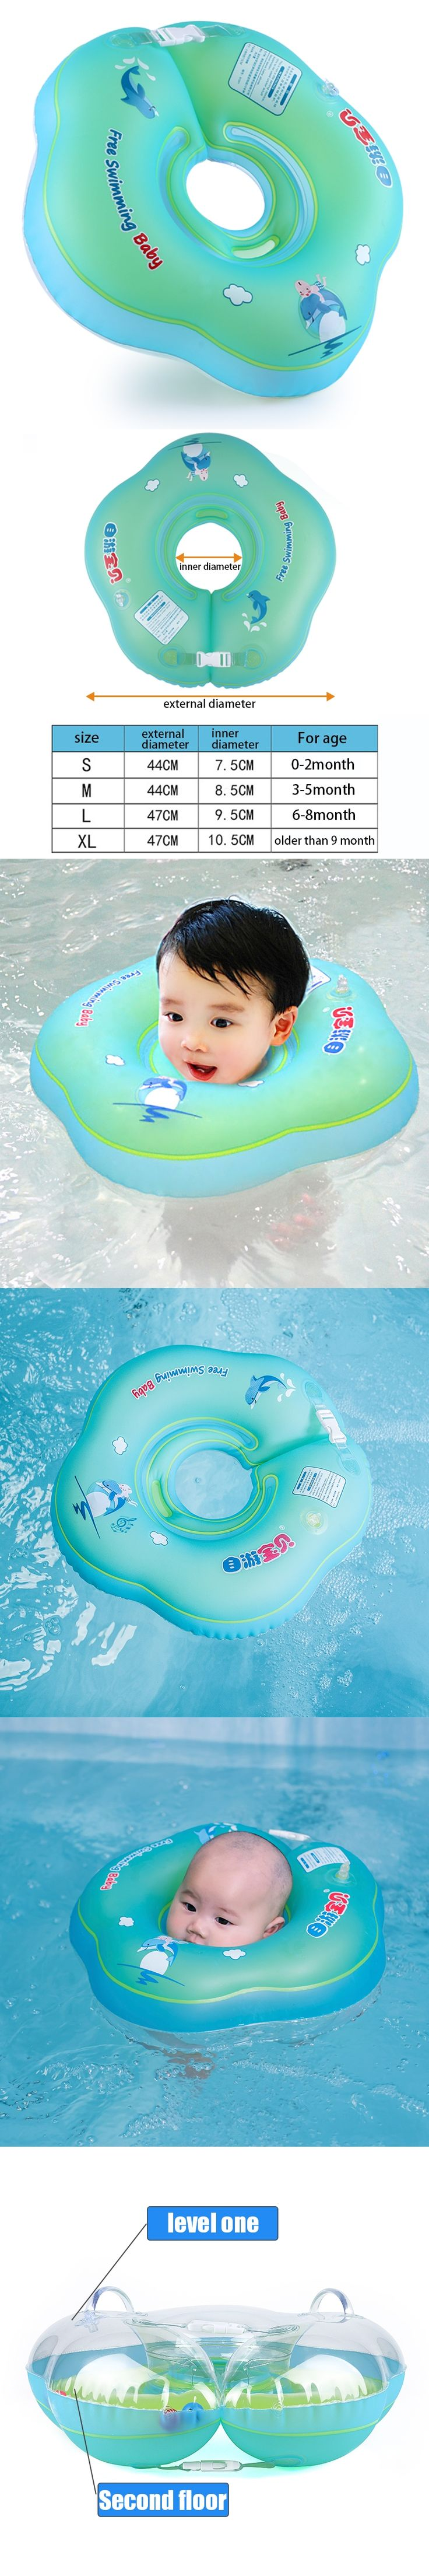 Best 25 swimming pool accessories ideas on pinterest for Swimming pool accessories